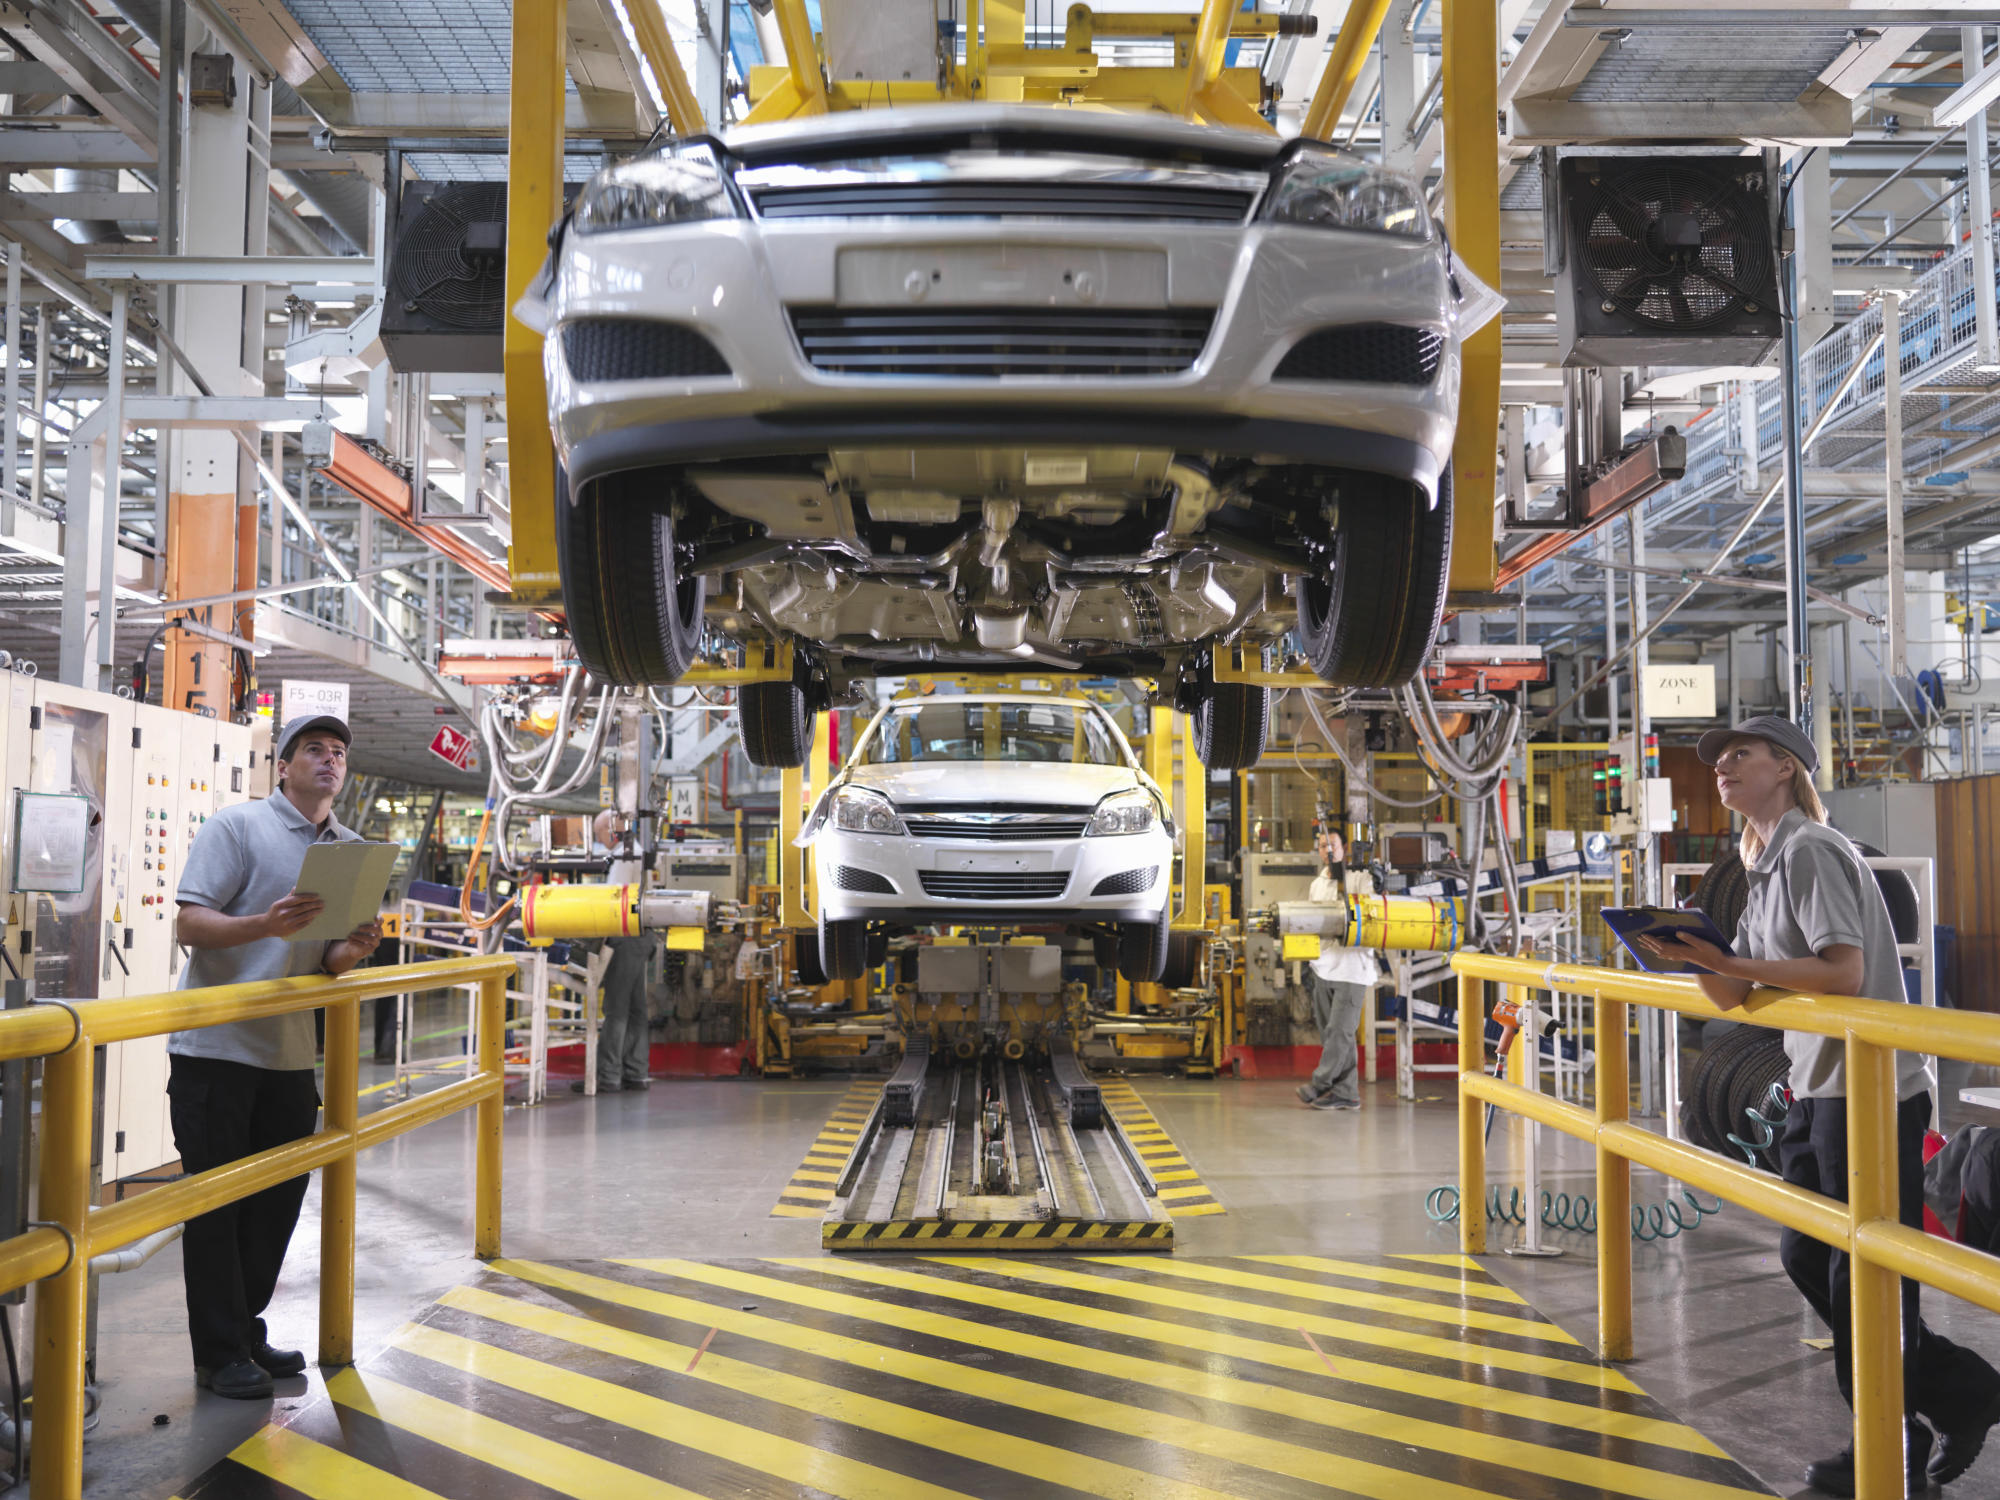 Raw material costs rising for automotive industry: BofA report [Video]